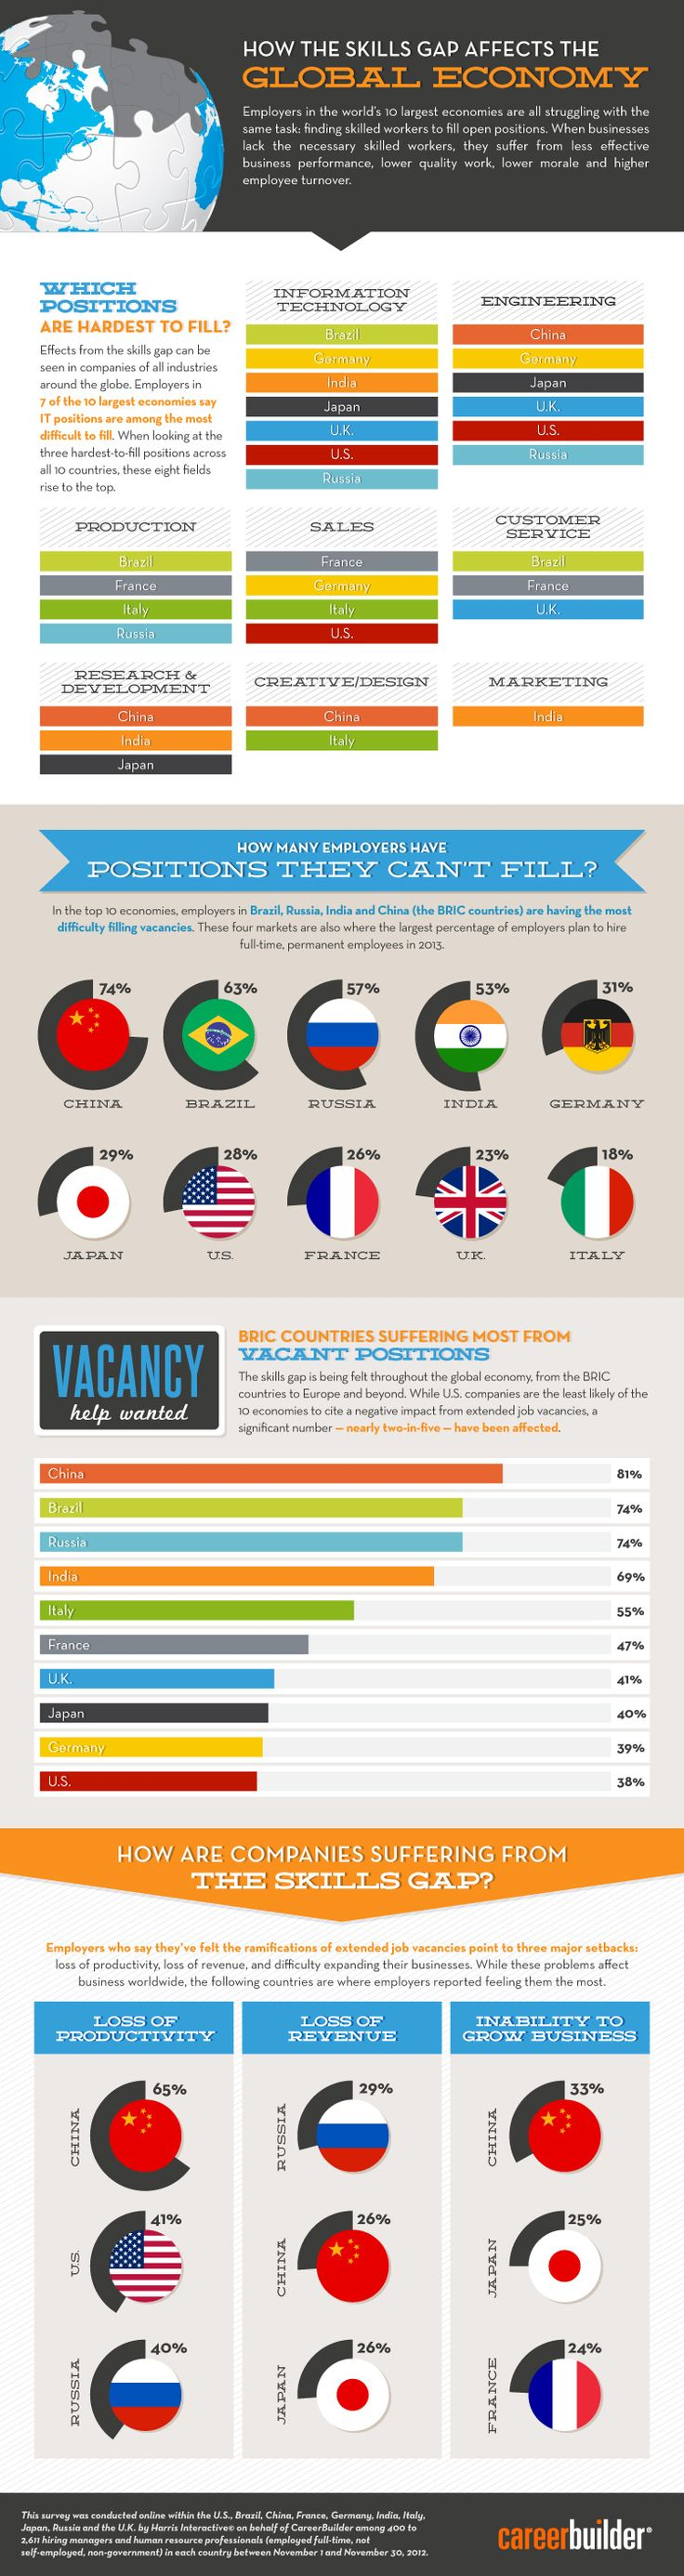 Charming MSN Careers   Infographic: Skills Gap Impacting Employers Across The Globe    Career Advice Article